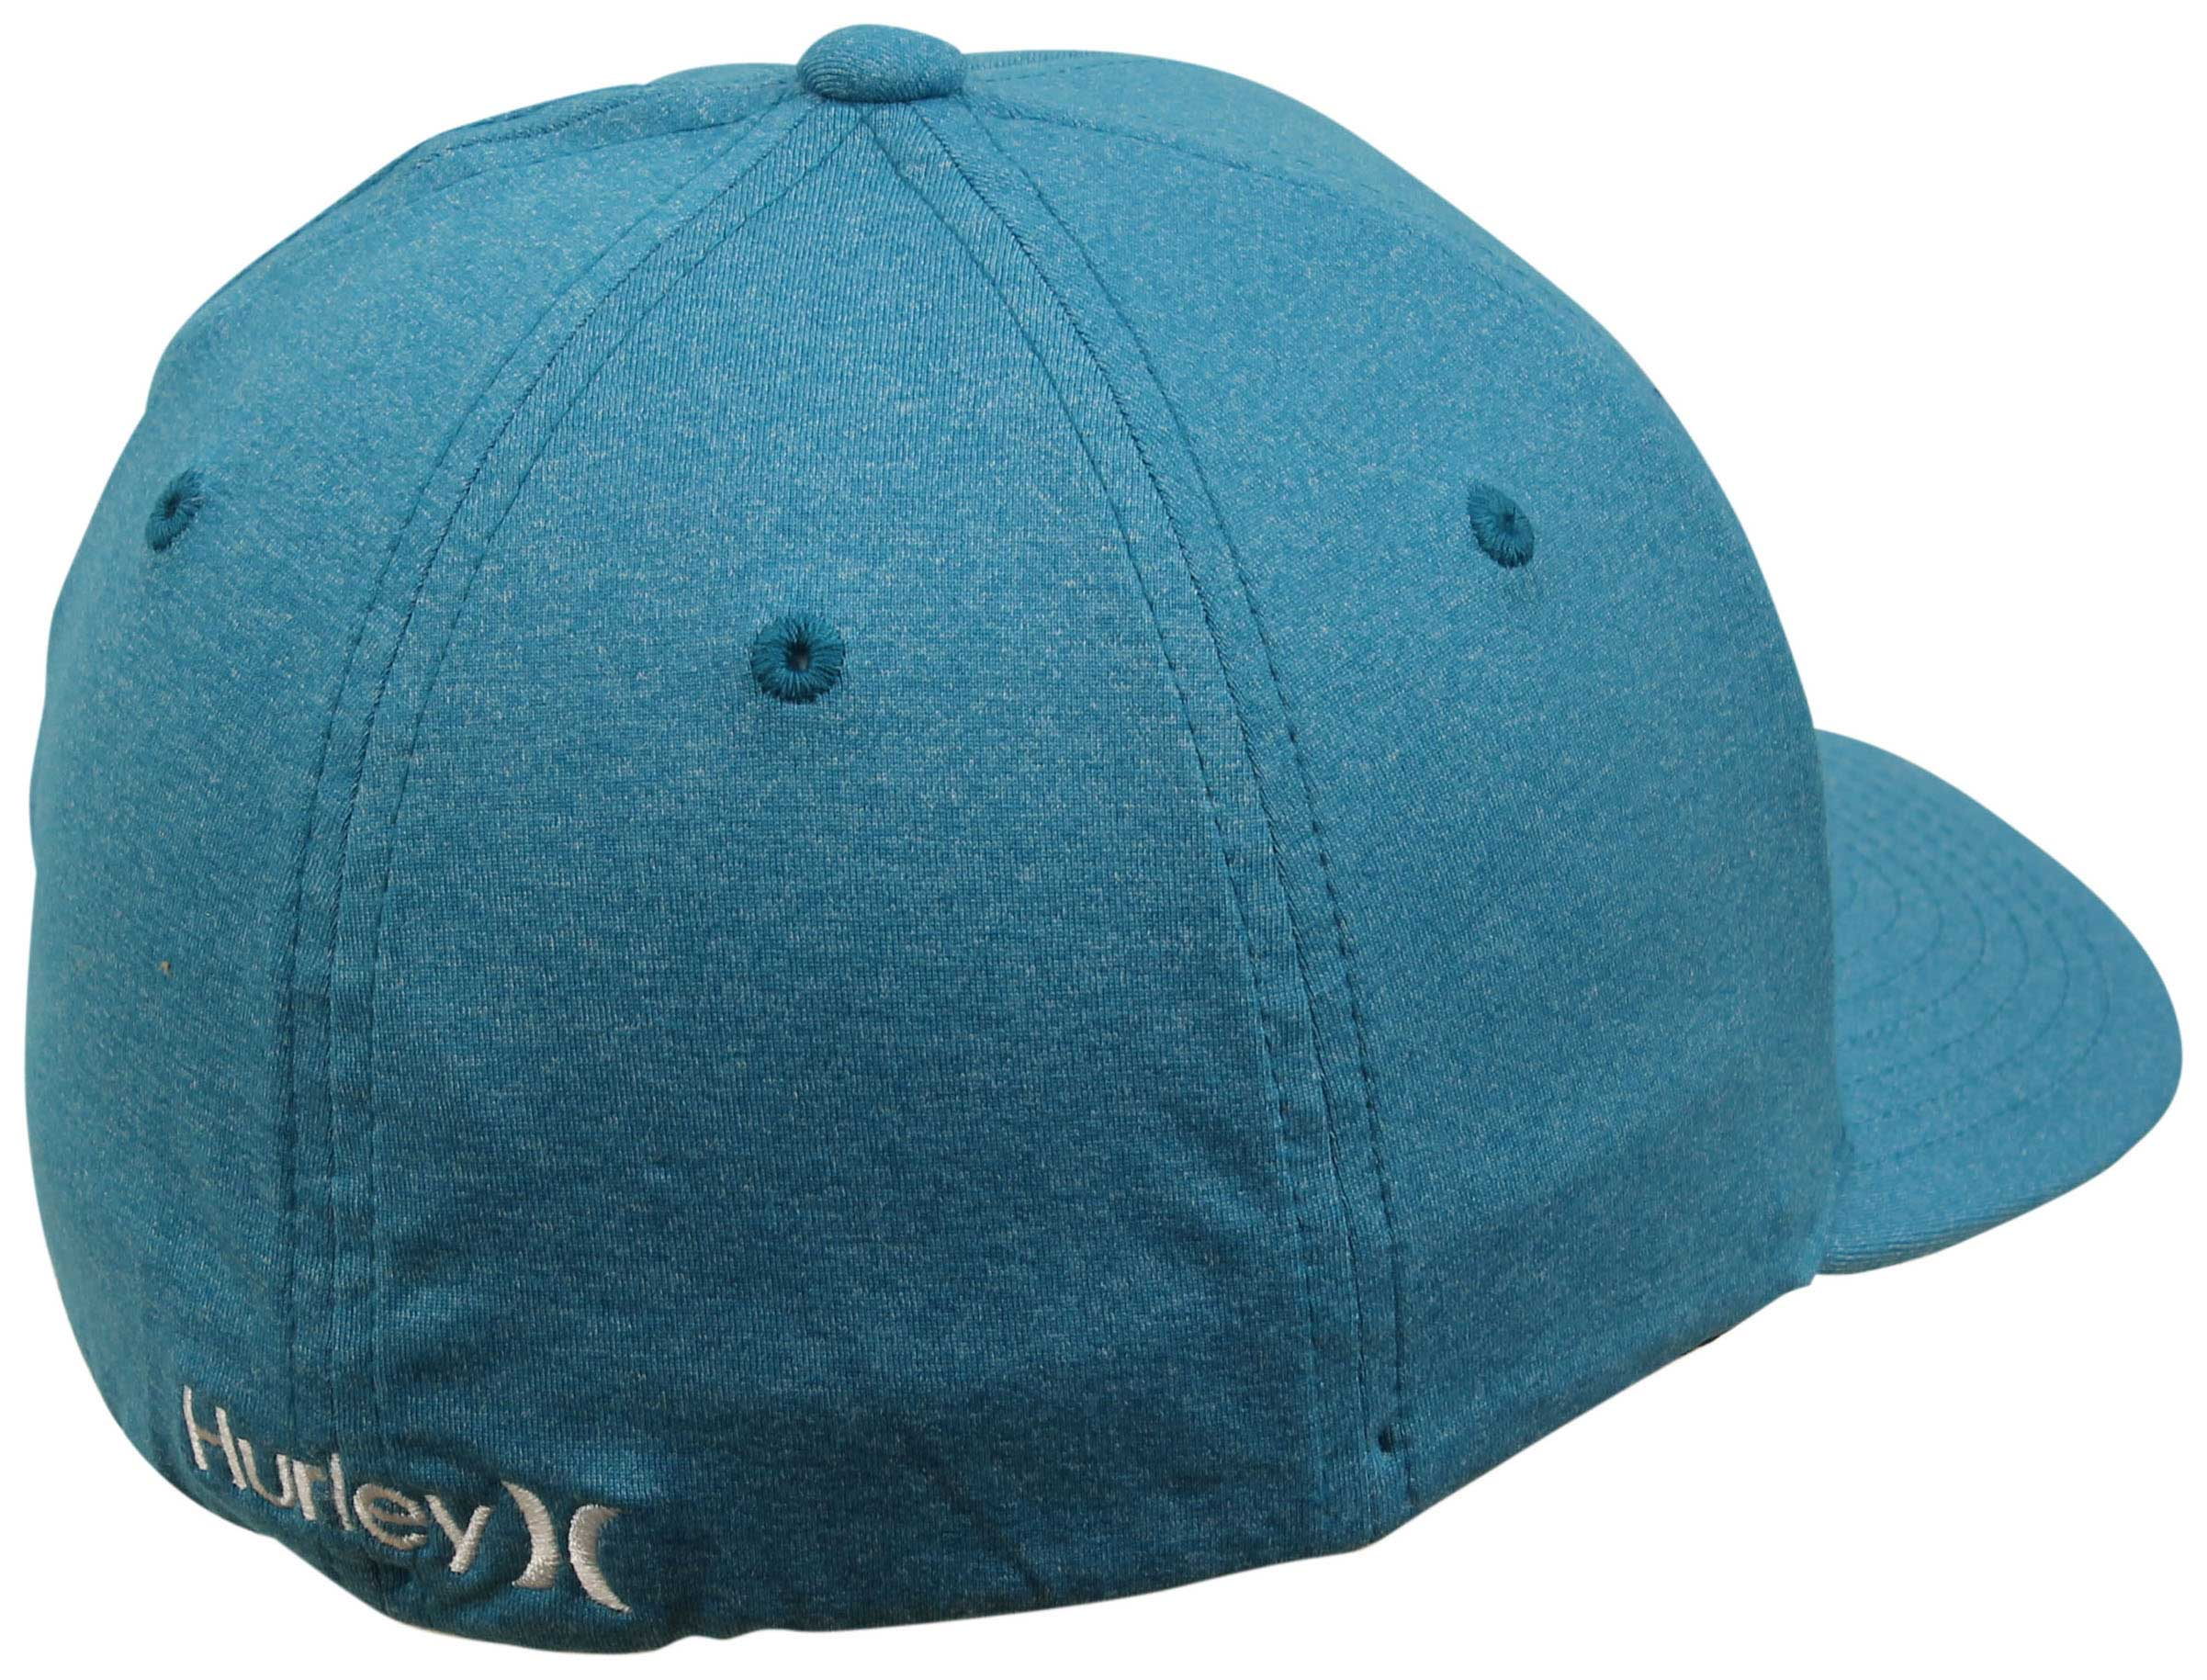 new product 2d499 bb092 ireland back of hurley one and textures hat chlorine blue 4a043 47b56